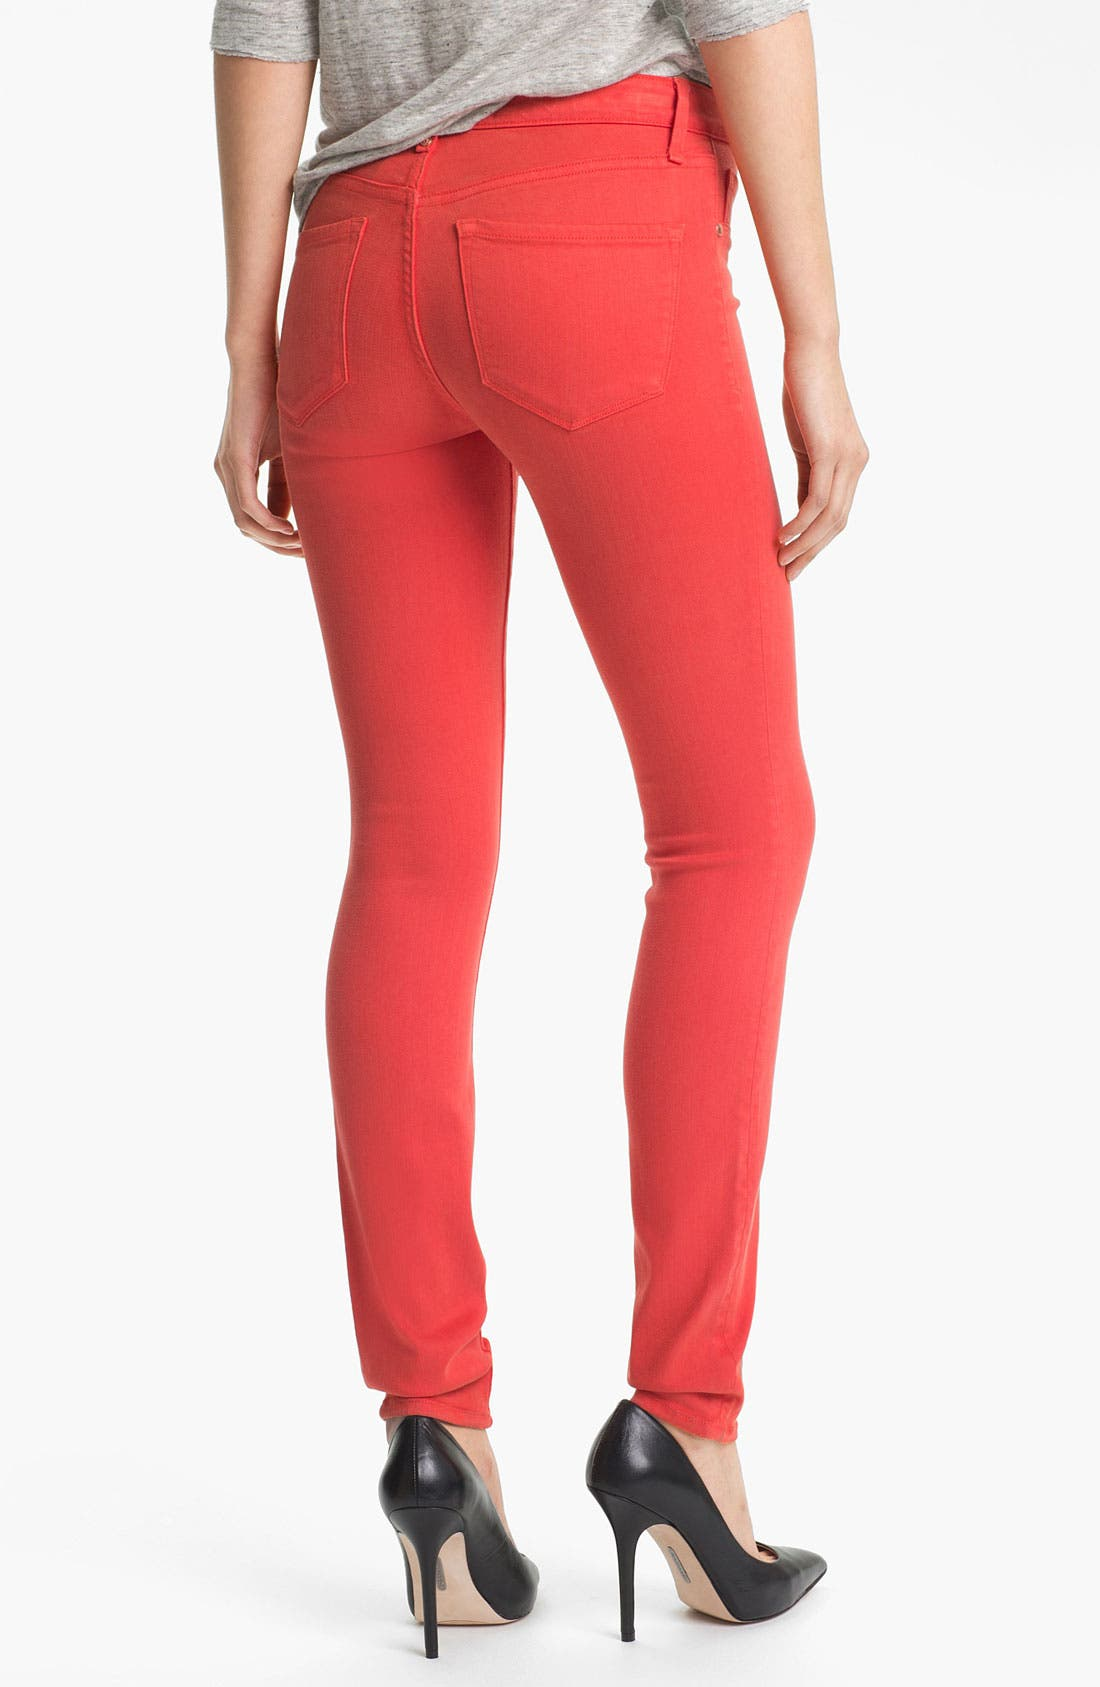 Alternate Image 2  - MARC BY MARC JACOBS 'Stick' Colored Skinny Stretch Jeans (Flamingo Red)